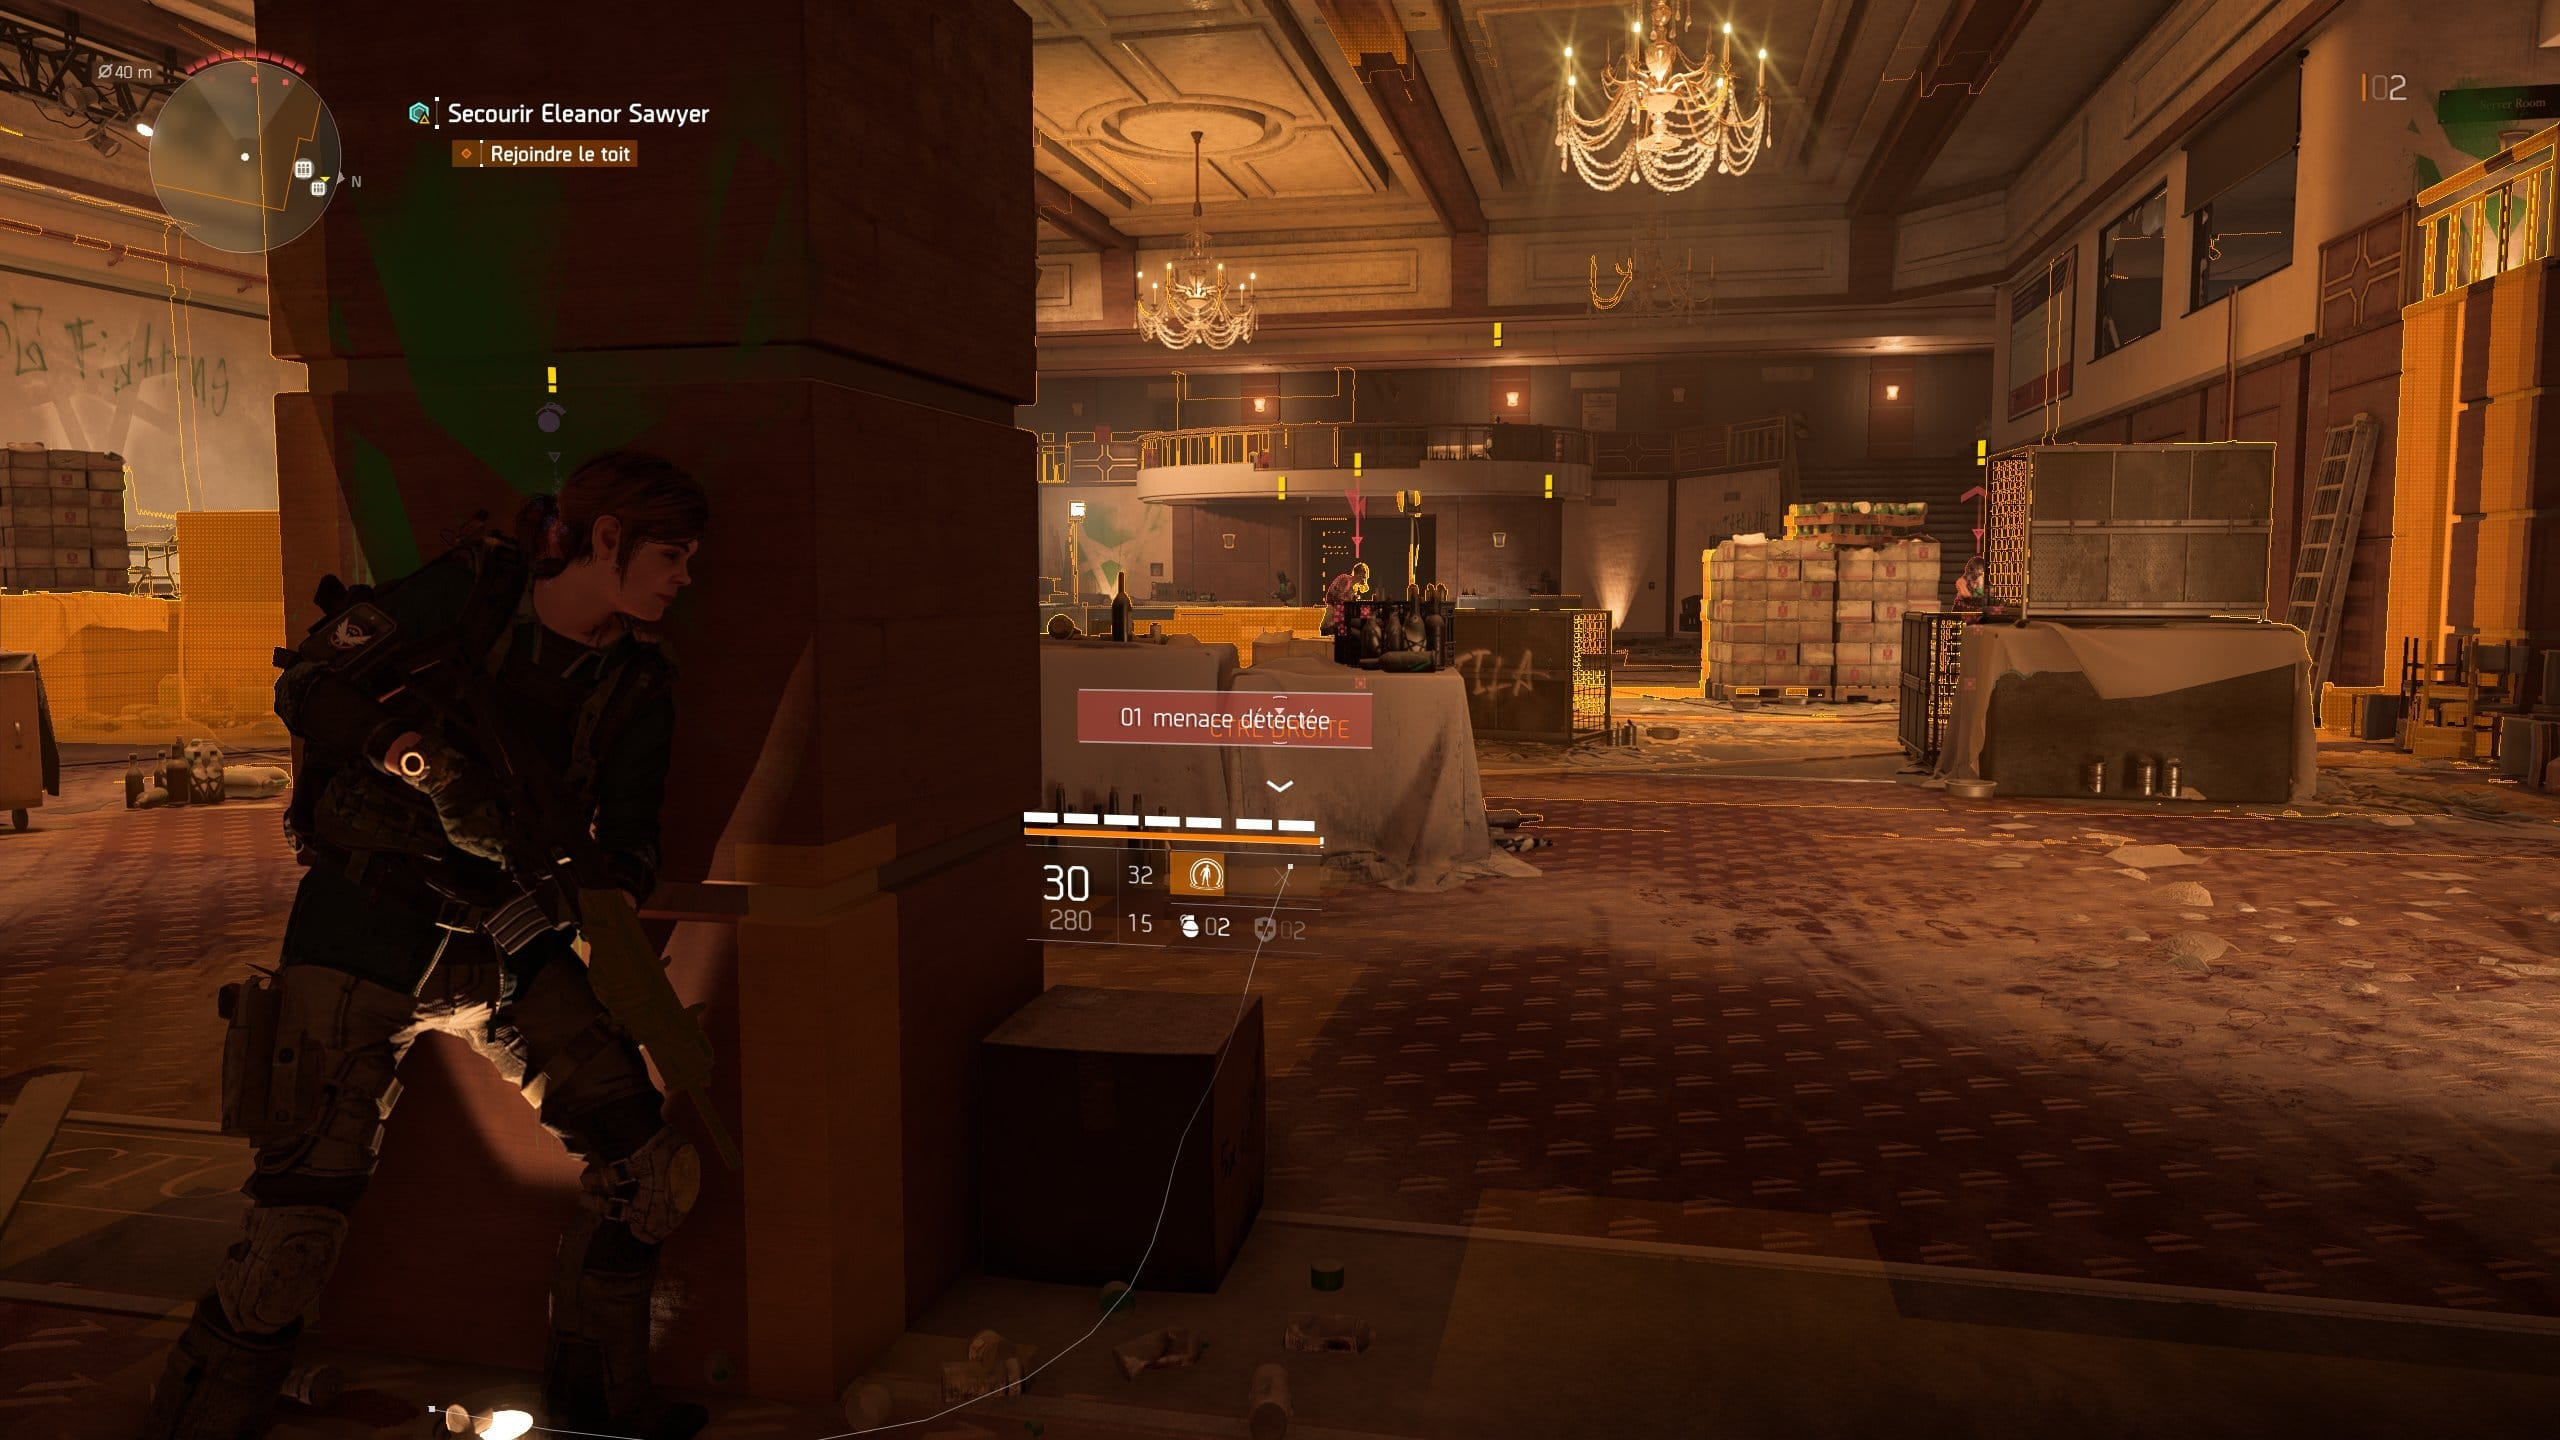 Image 15 : Test : The Division 2, analyse des performances sur GPU AMD et NVIDIA